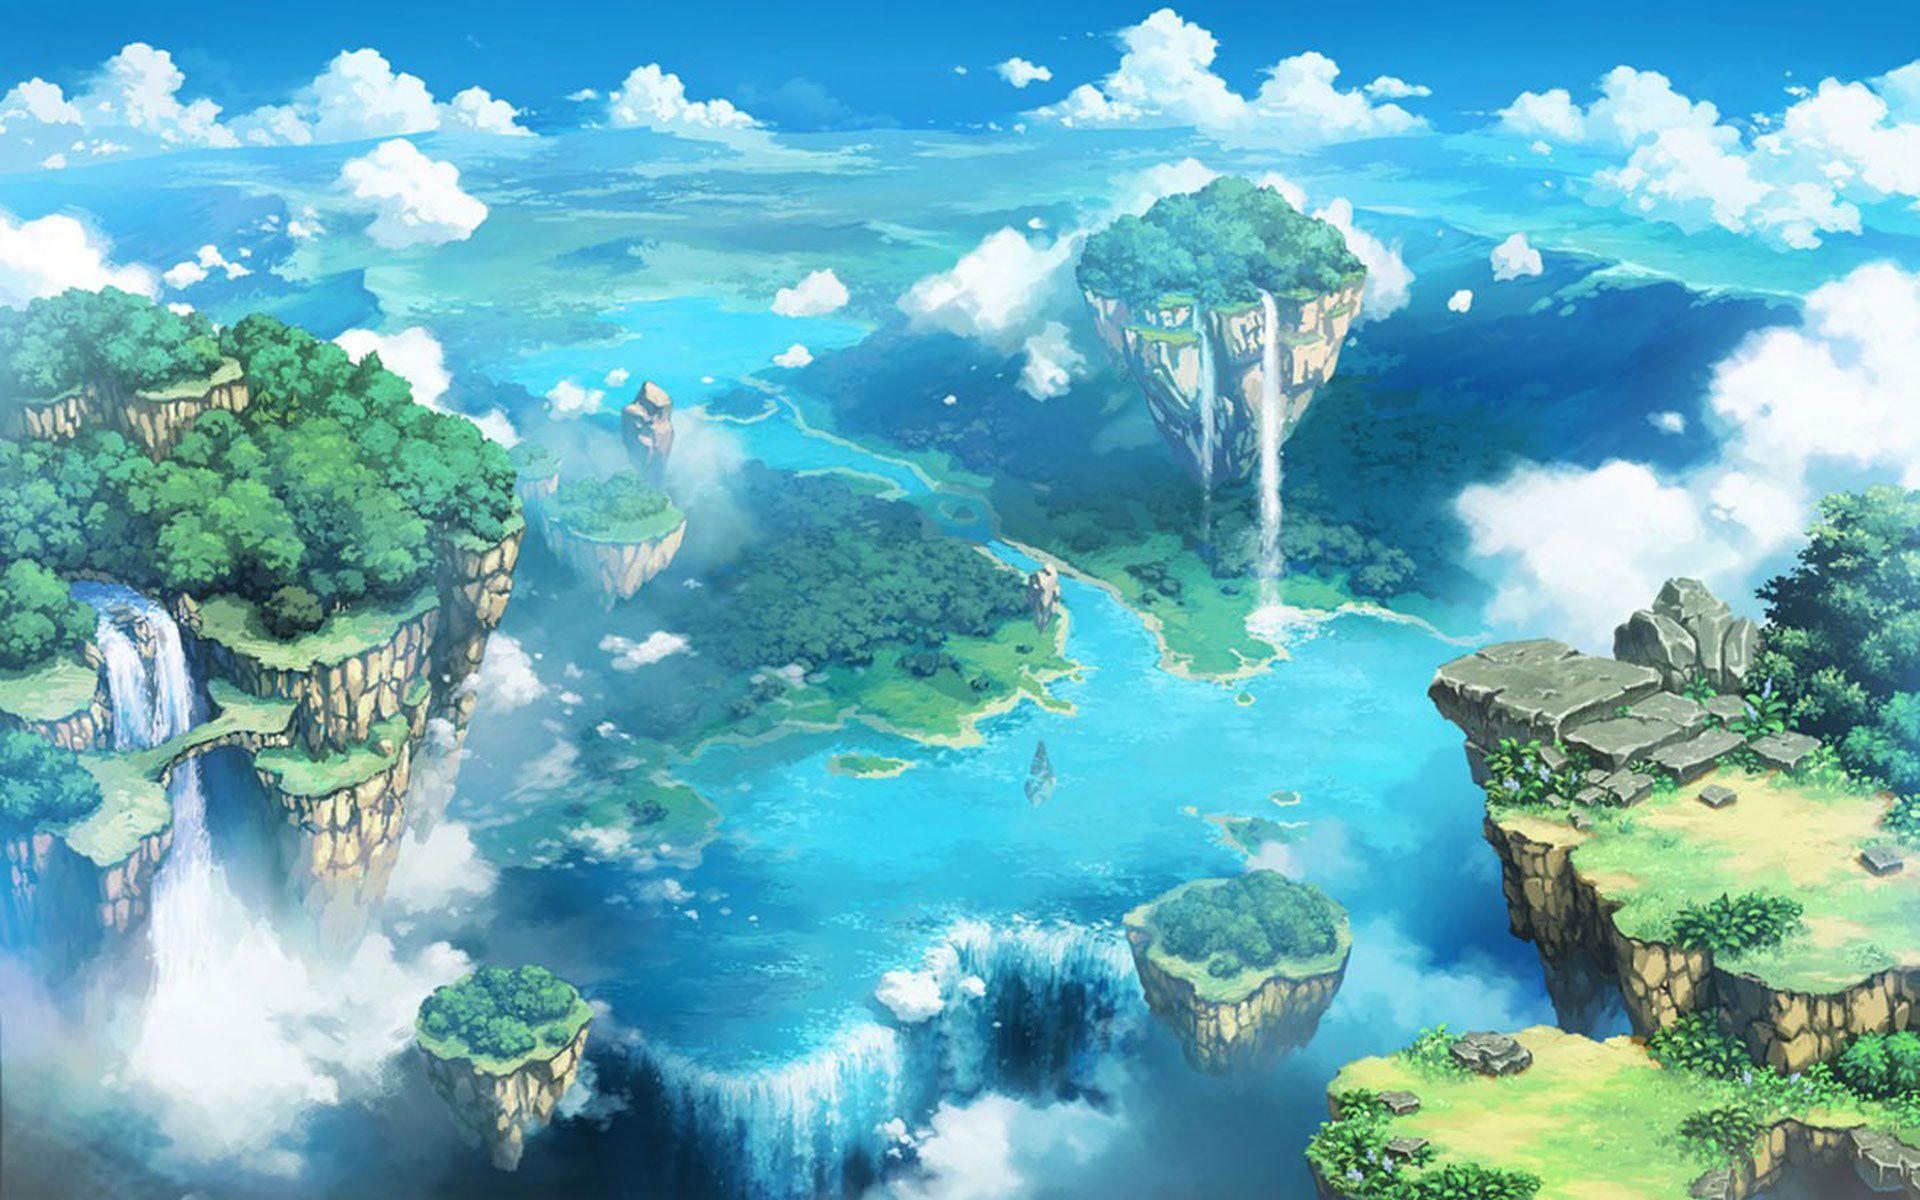 Backgrounds Anime Landscape Download. in 2020